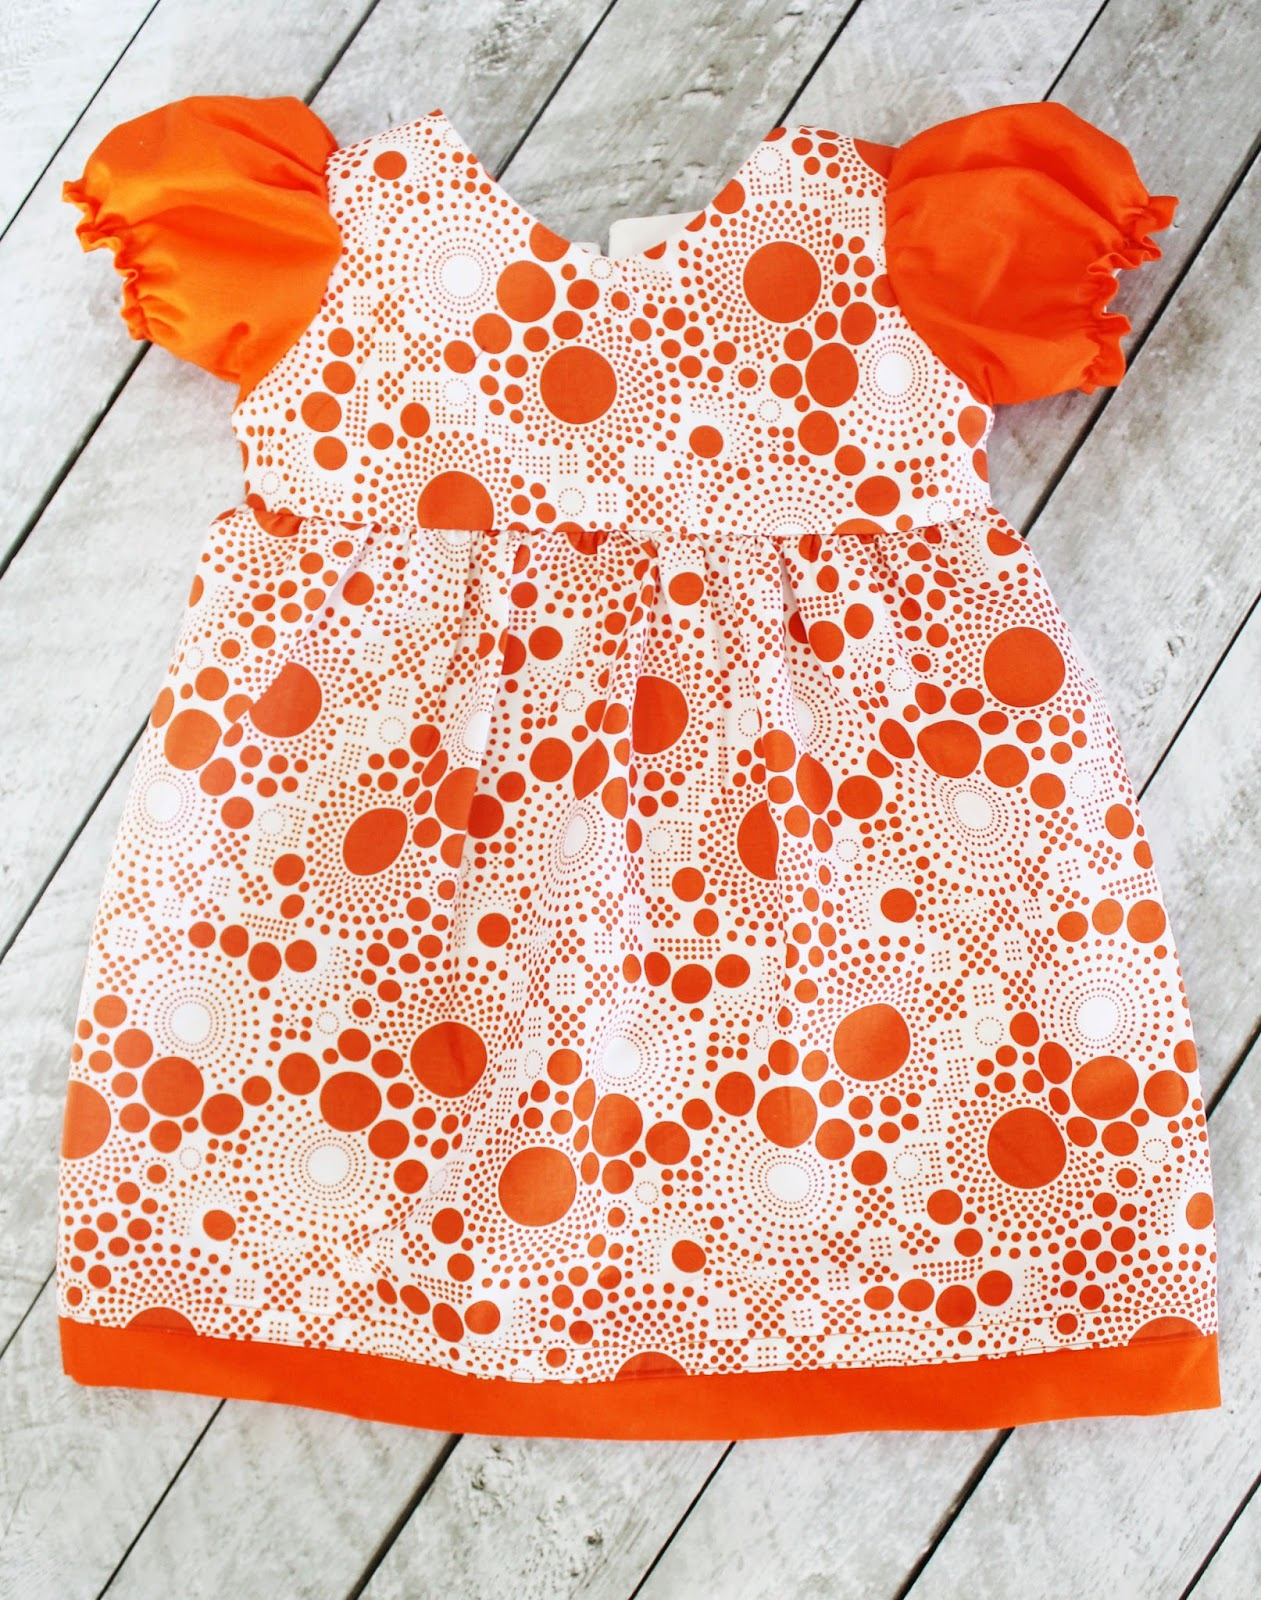 Puff Sleeve Toddler Dress with Free Sewing Pattern  sc 1 st  The Stitching Scientist & Puff Sleeve Toddler Dress with Free Sewing Pattern | The Stitching ...